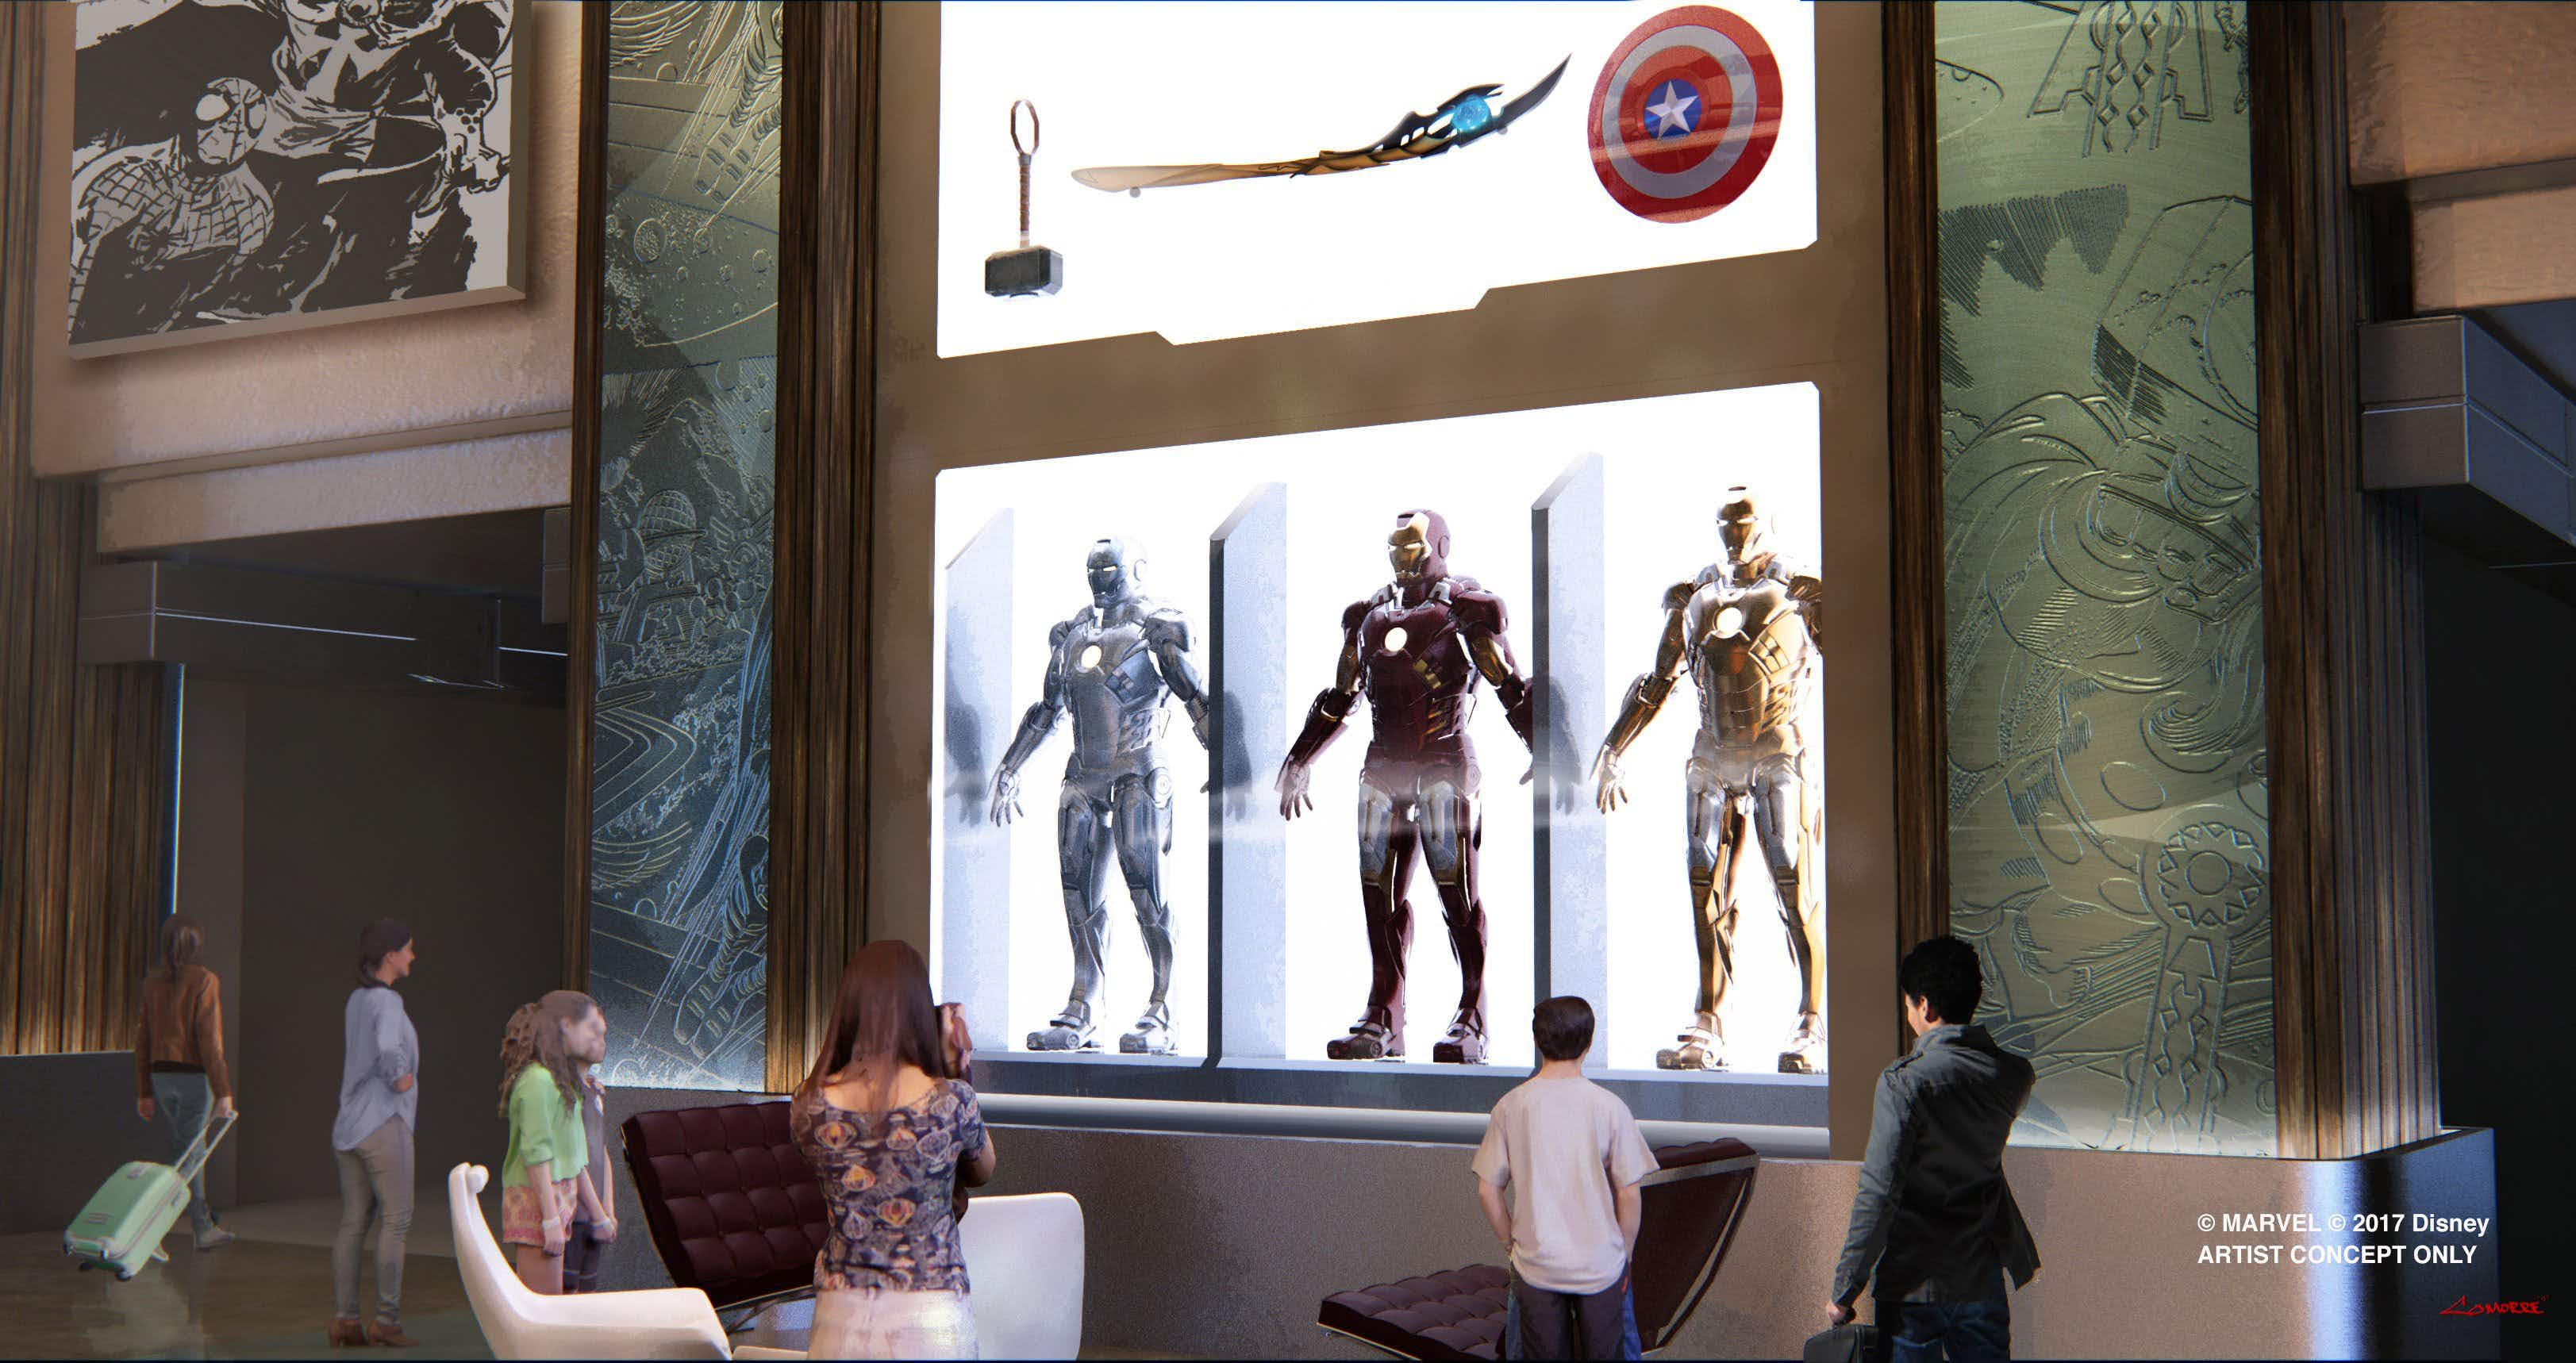 Has your spidey sense been tingling lately? Disneyland Paris is getting a Marvel-themed hotel